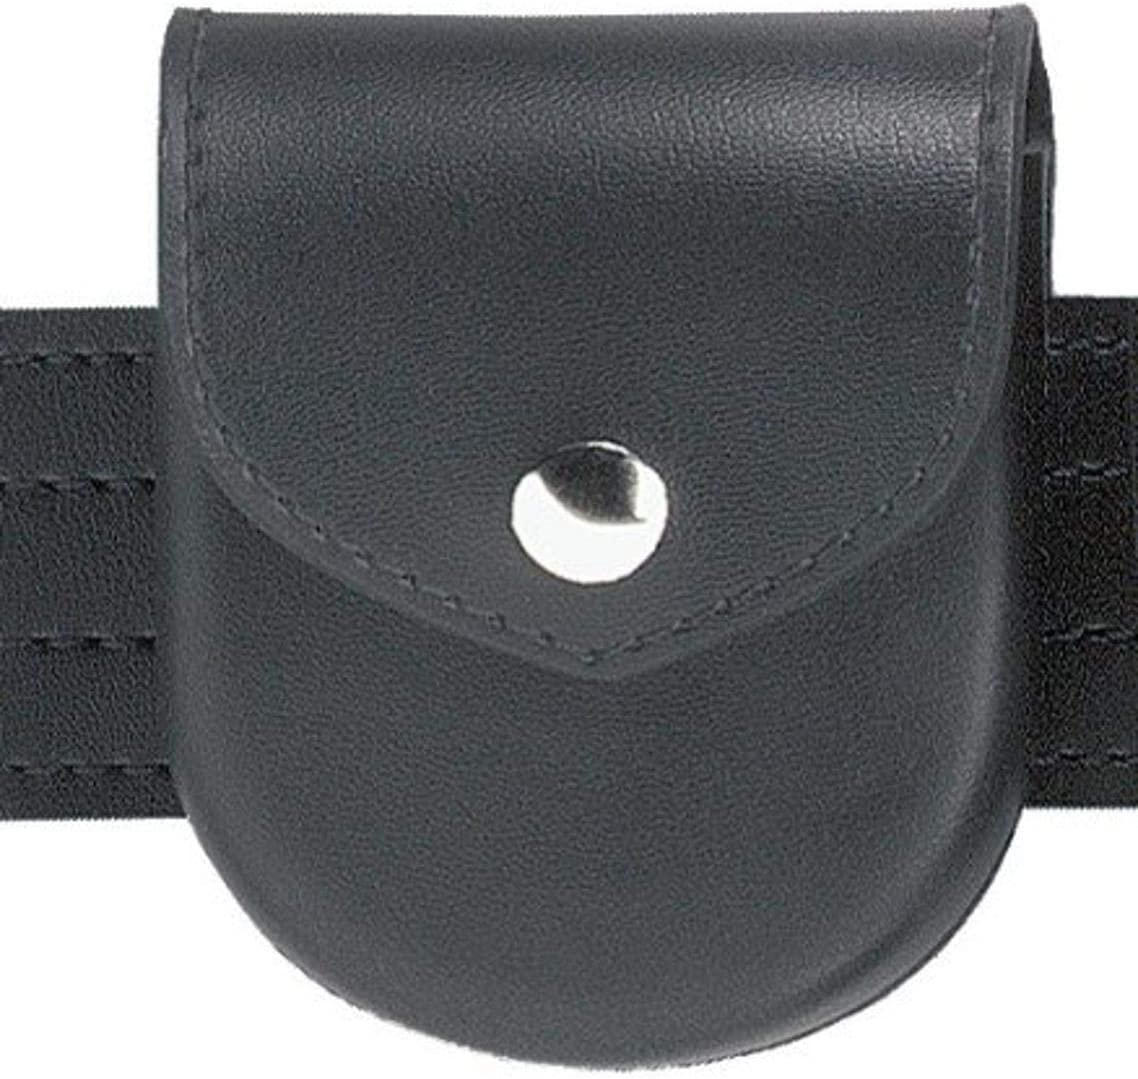 Safariland Duty Gear Chrome Snap Flap Top Handcuff Case (Plain Black)